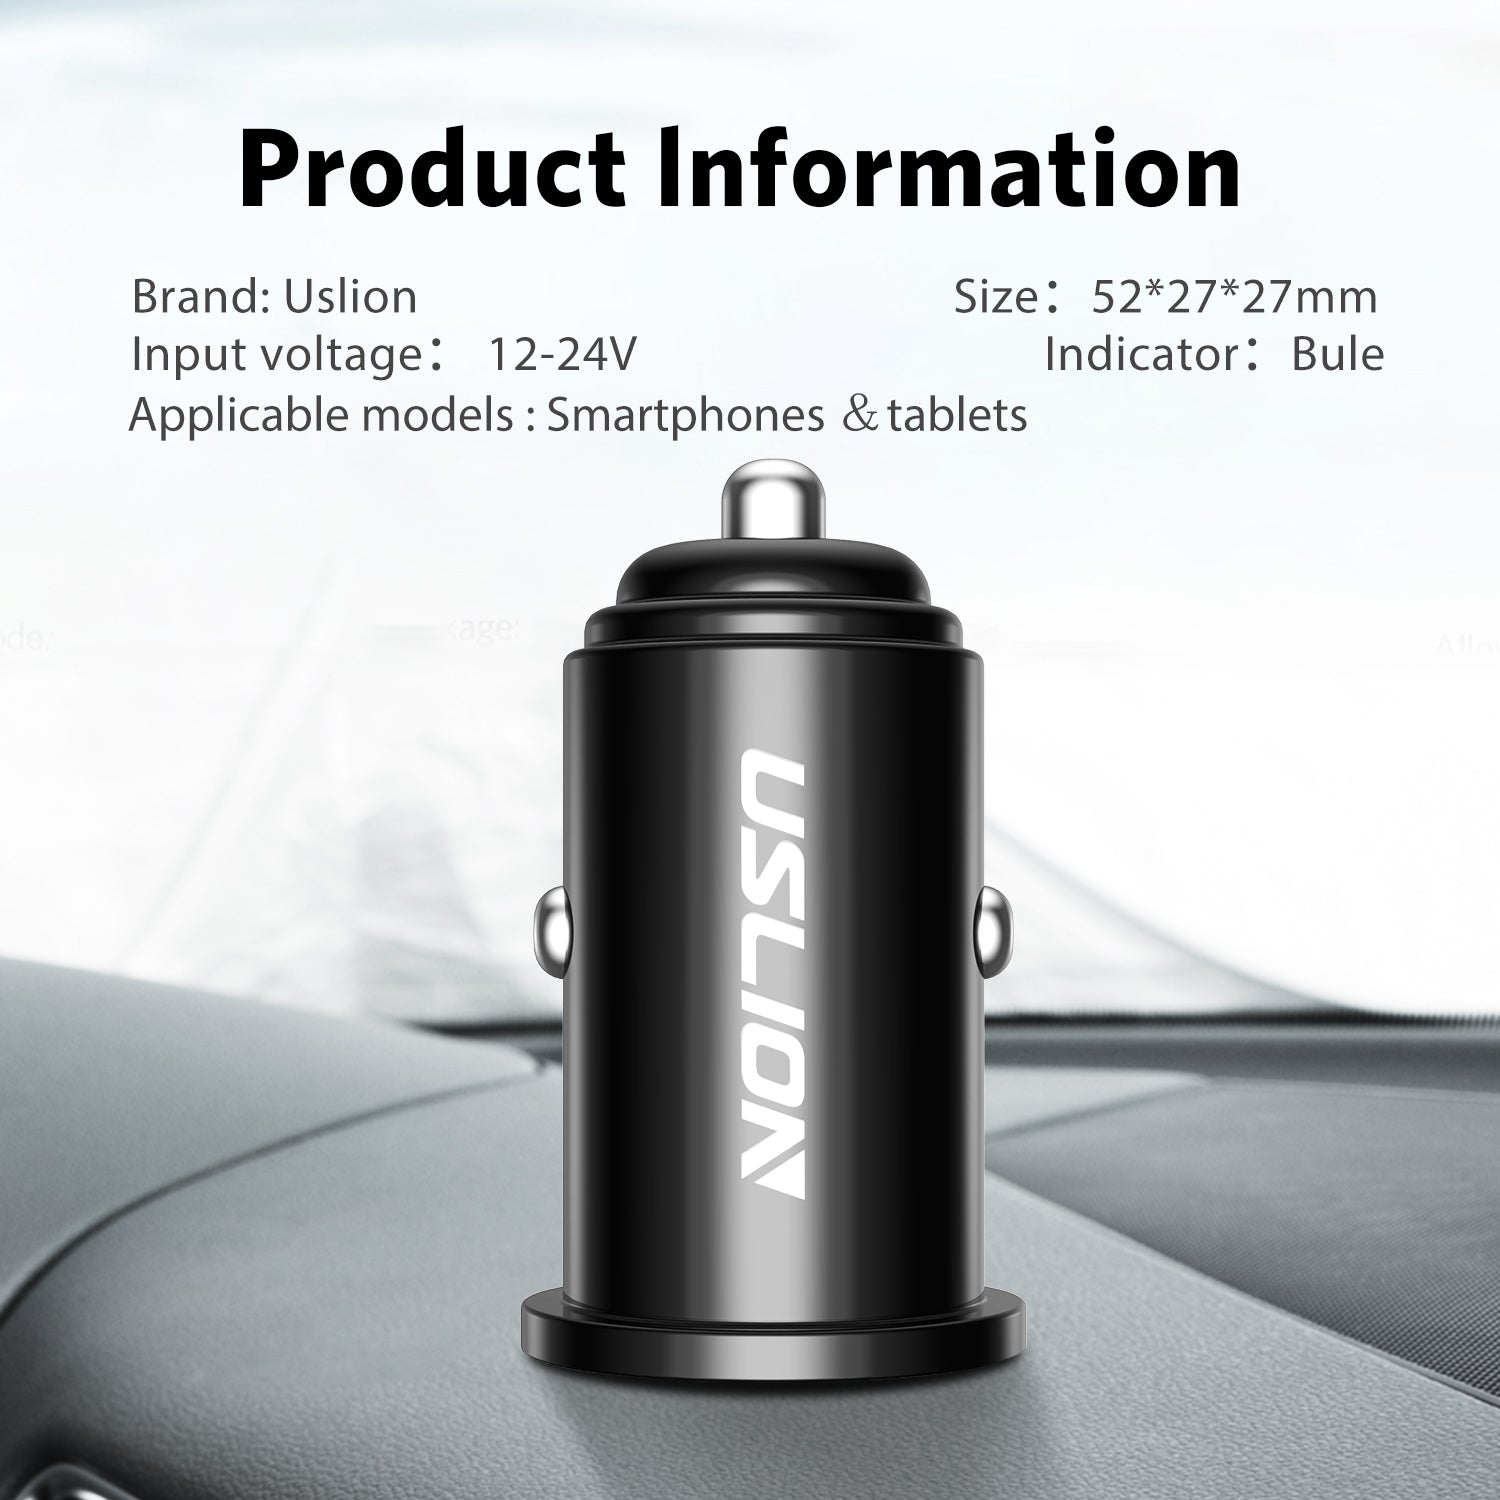 USLION Car USB Charger Quick Charge 3.0 2.4A Mobile Phone USB Charger Fast Charging